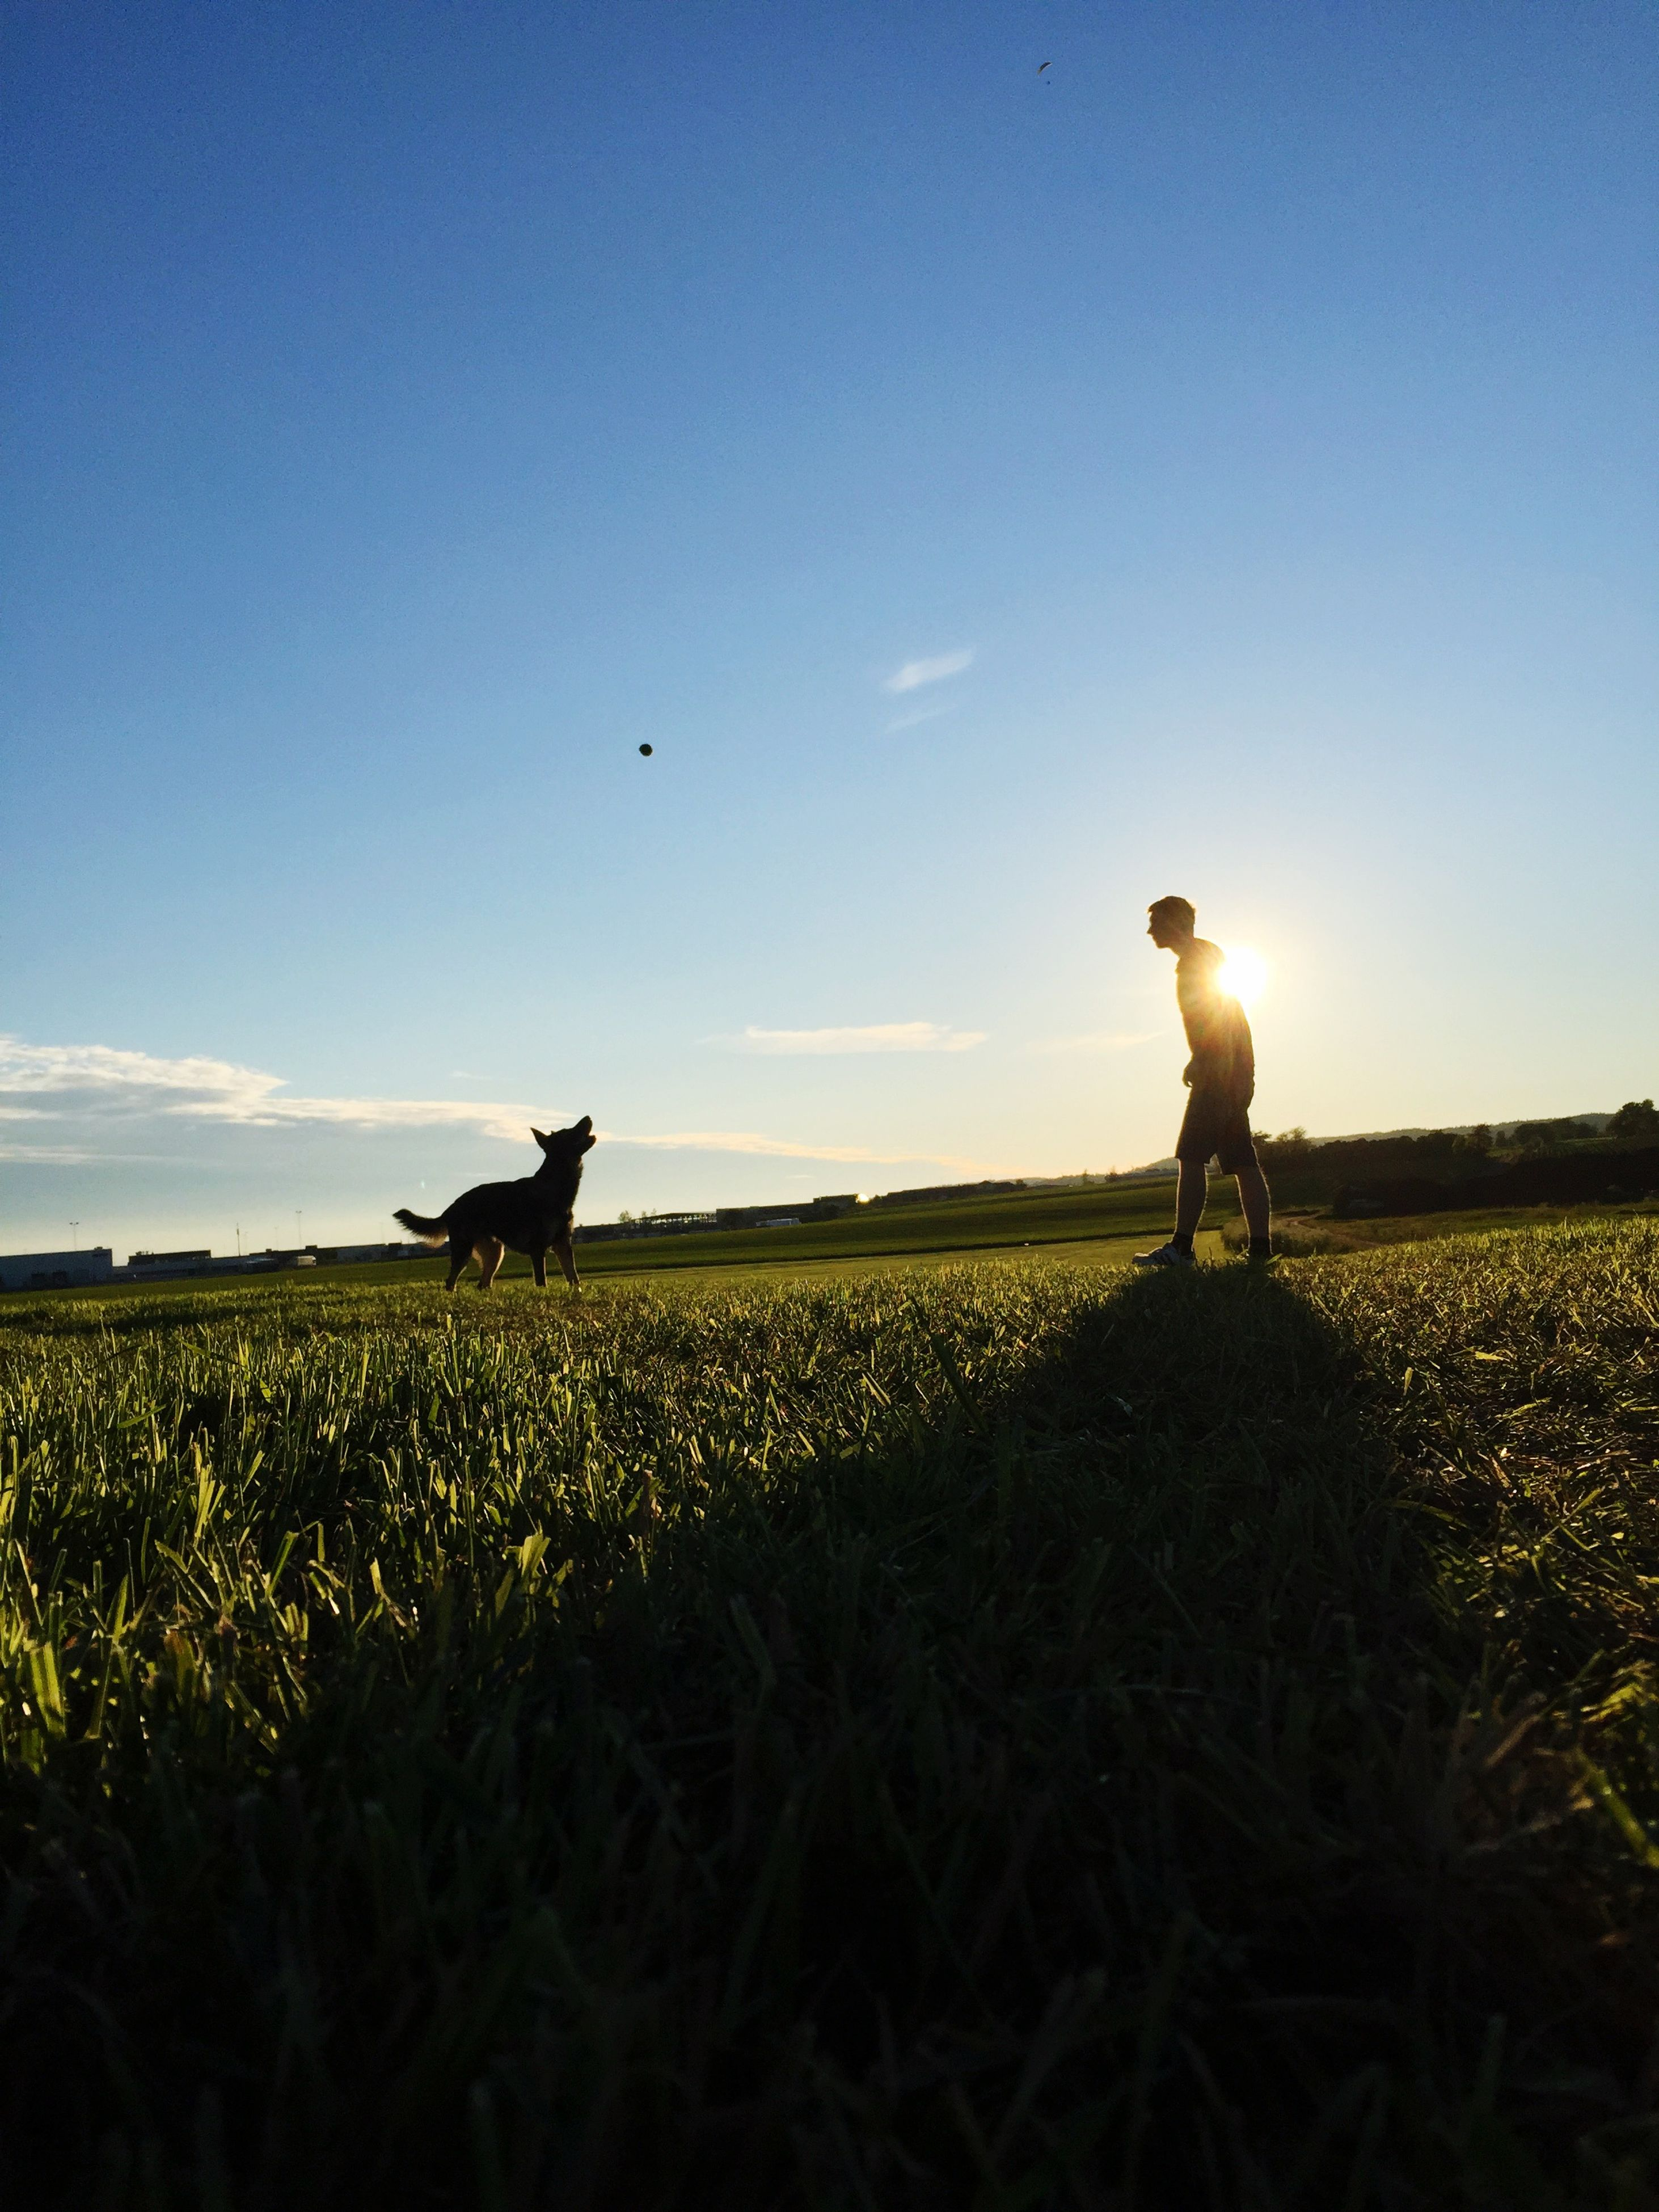 field, landscape, rural scene, sky, agriculture, grass, tranquility, tranquil scene, beauty in nature, scenics, men, nature, copy space, clear sky, farm, full length, horizon over land, rear view, domestic animals